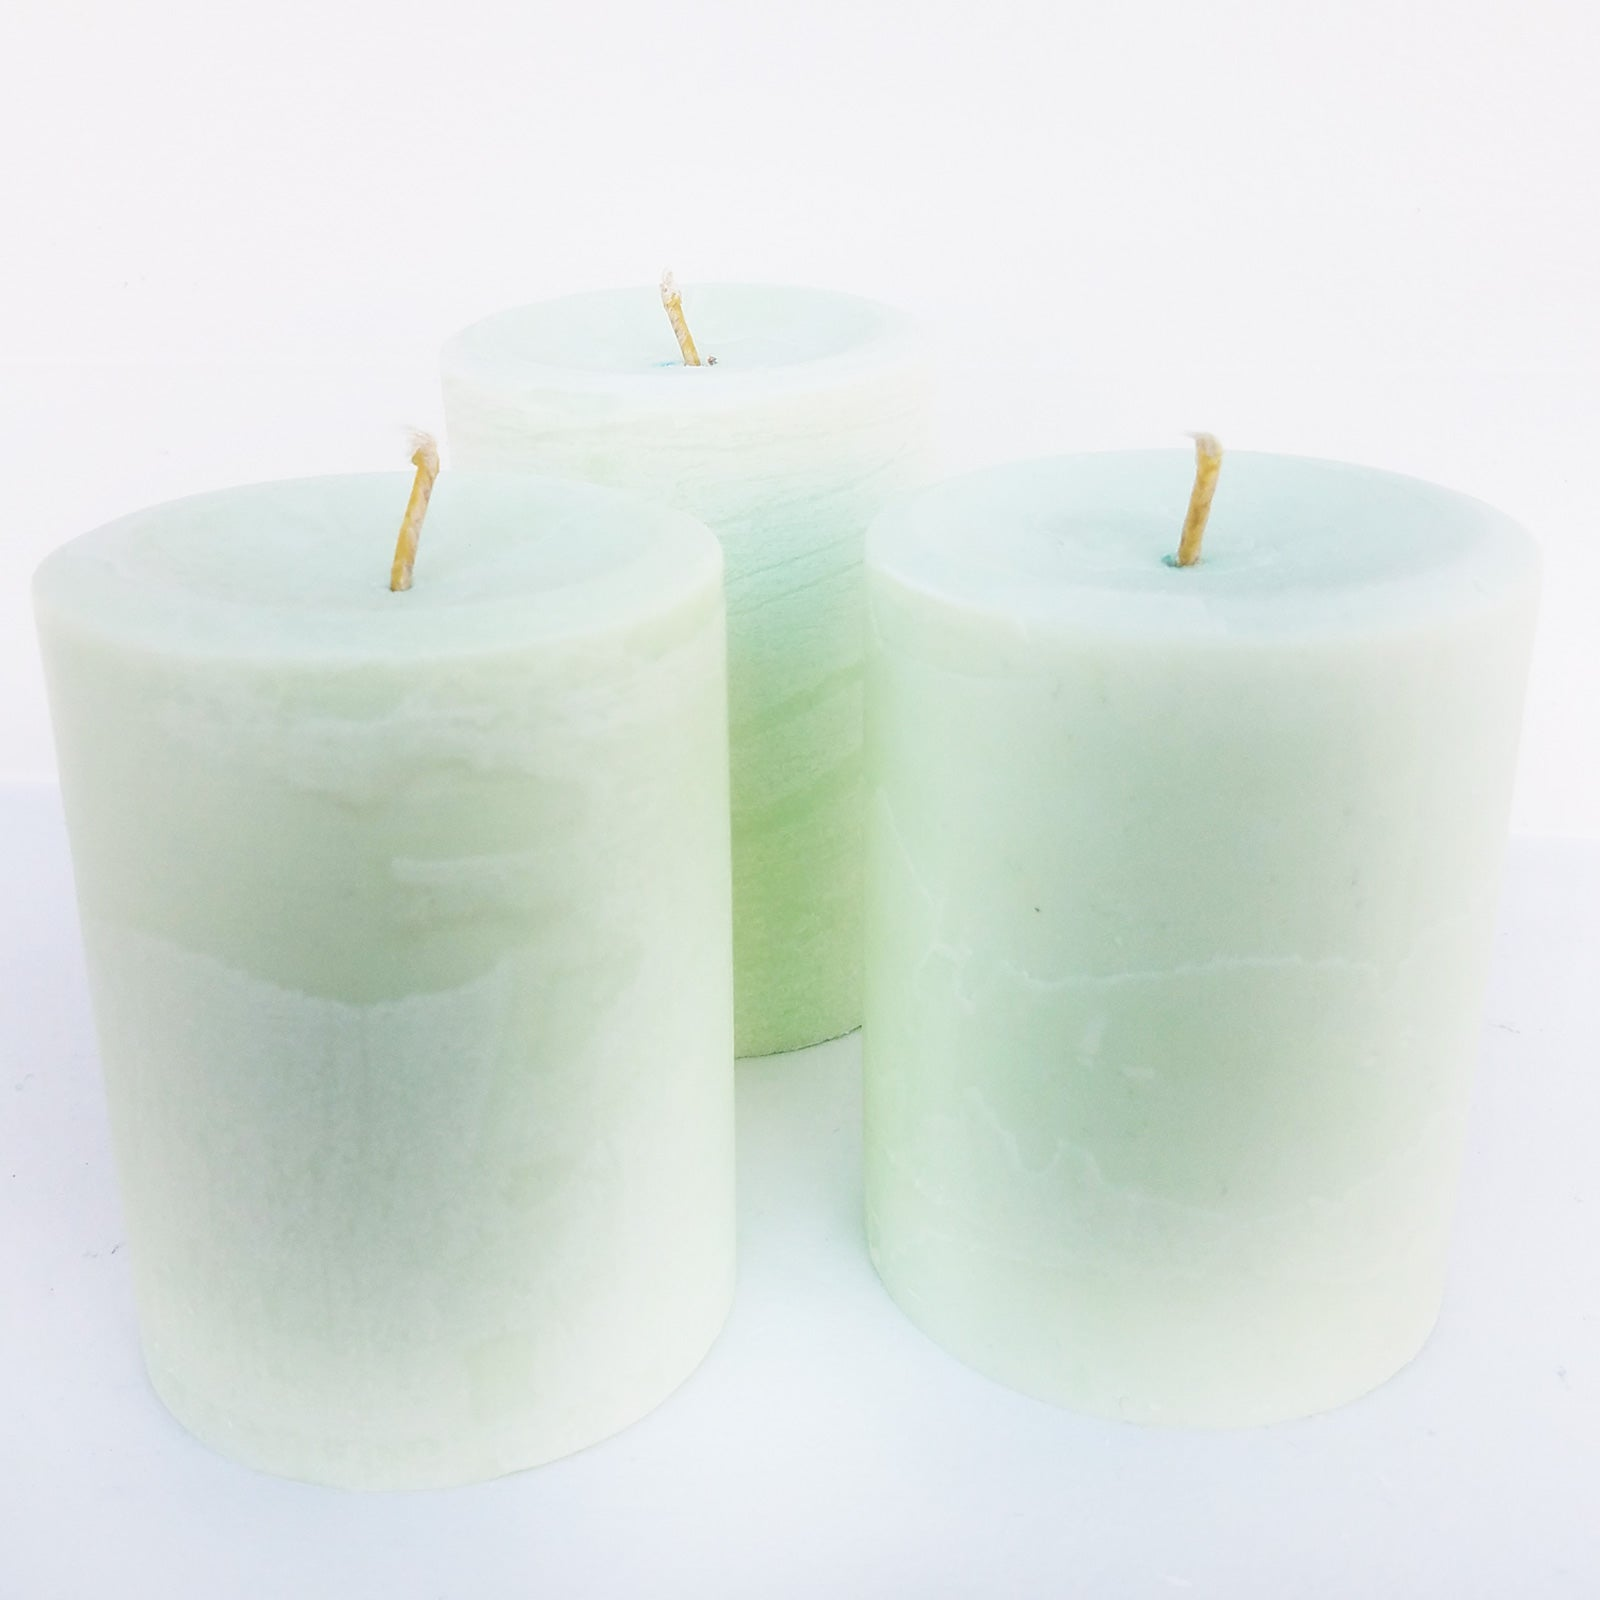 Shades of Seafoam Gree Pillar Candle | Frontier Supply Shop | Chicago, IL at Sustain - Gallery and Shop - Chicago, IL